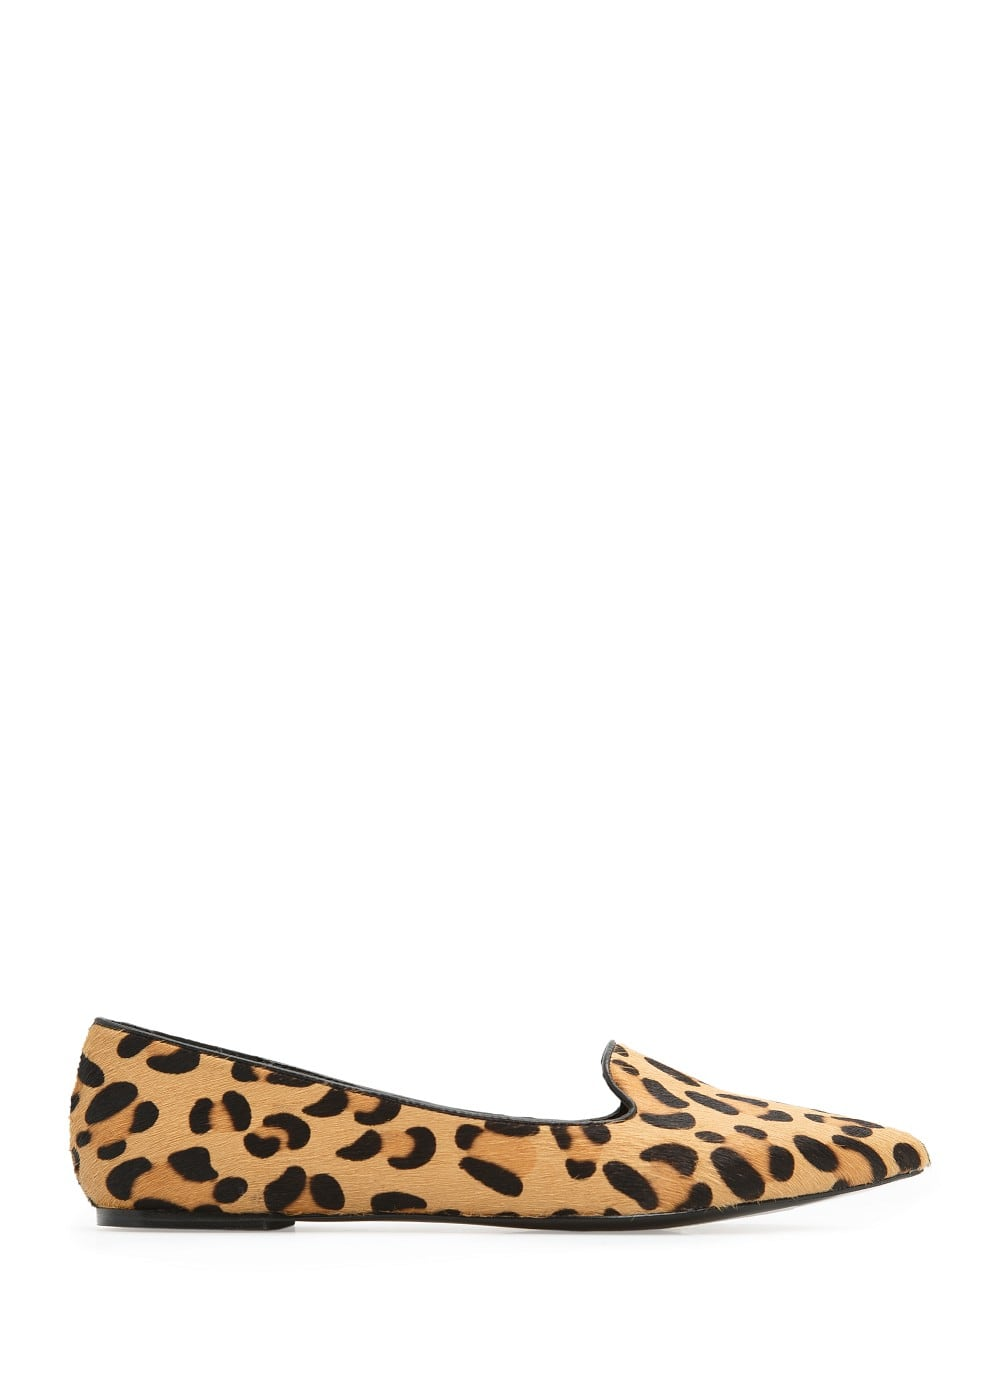 Leopard fur slippers